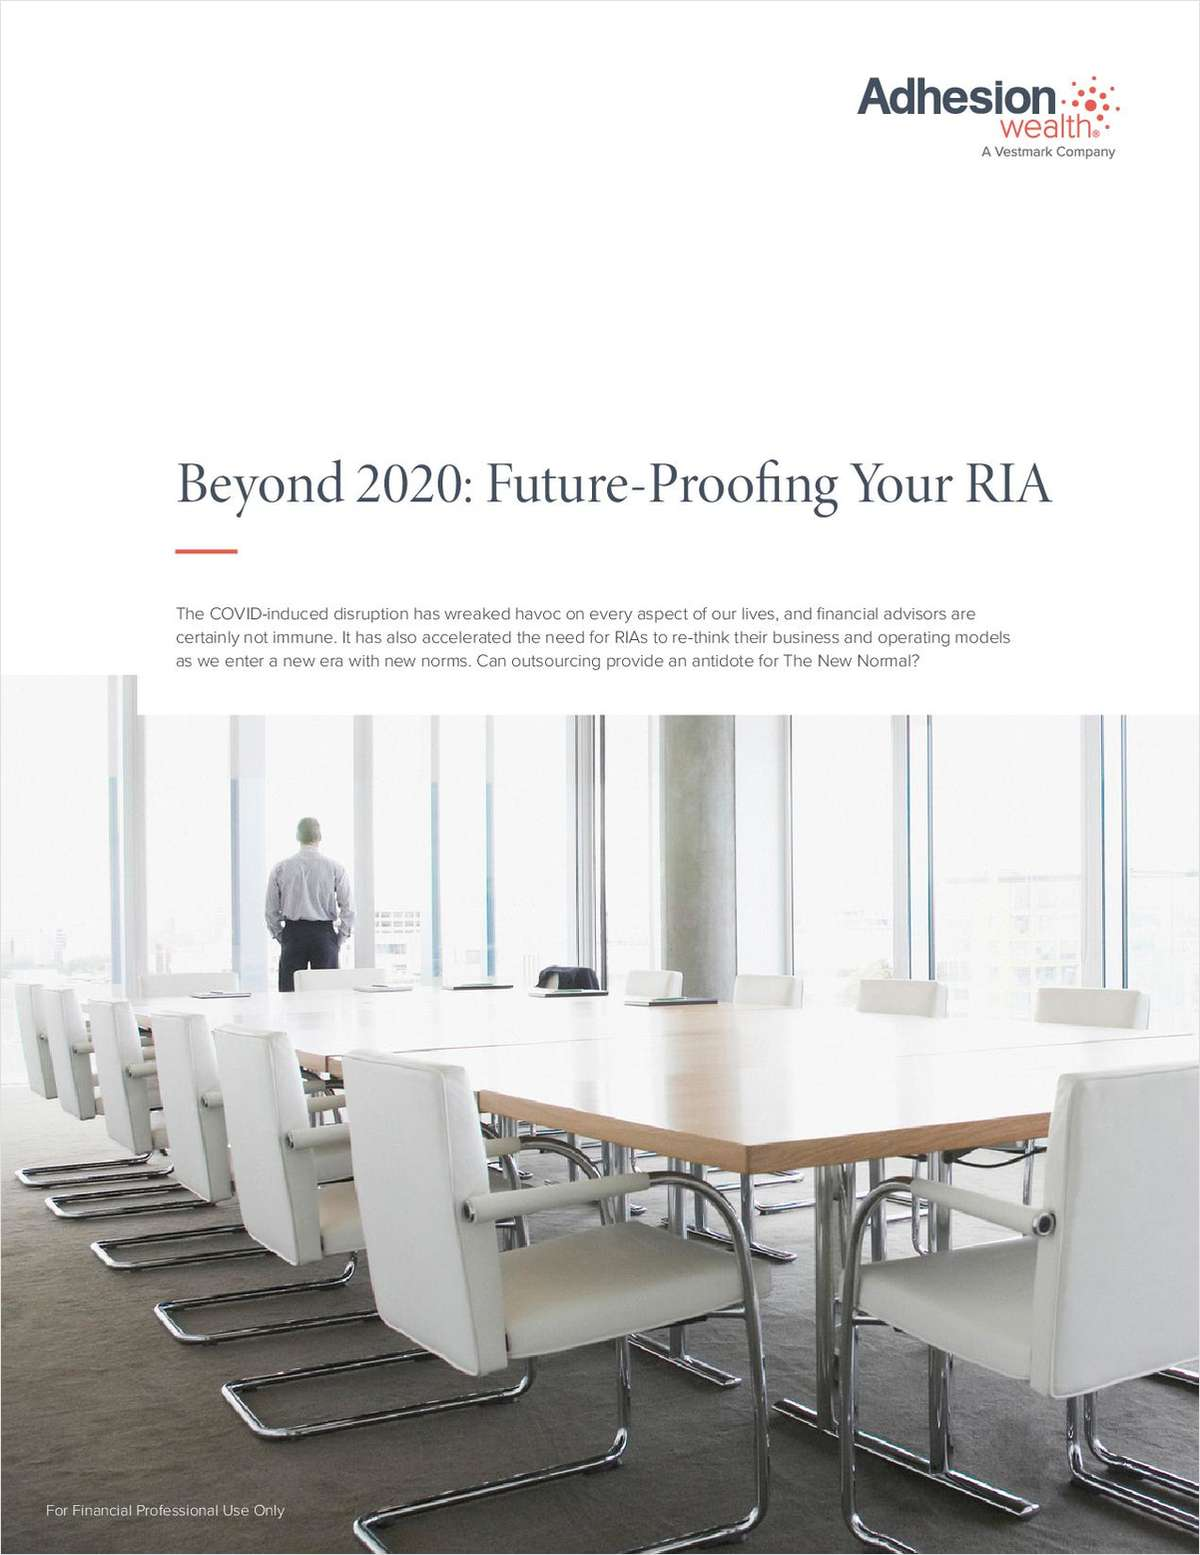 Beyond 2020: Future-Proofing Your RIA